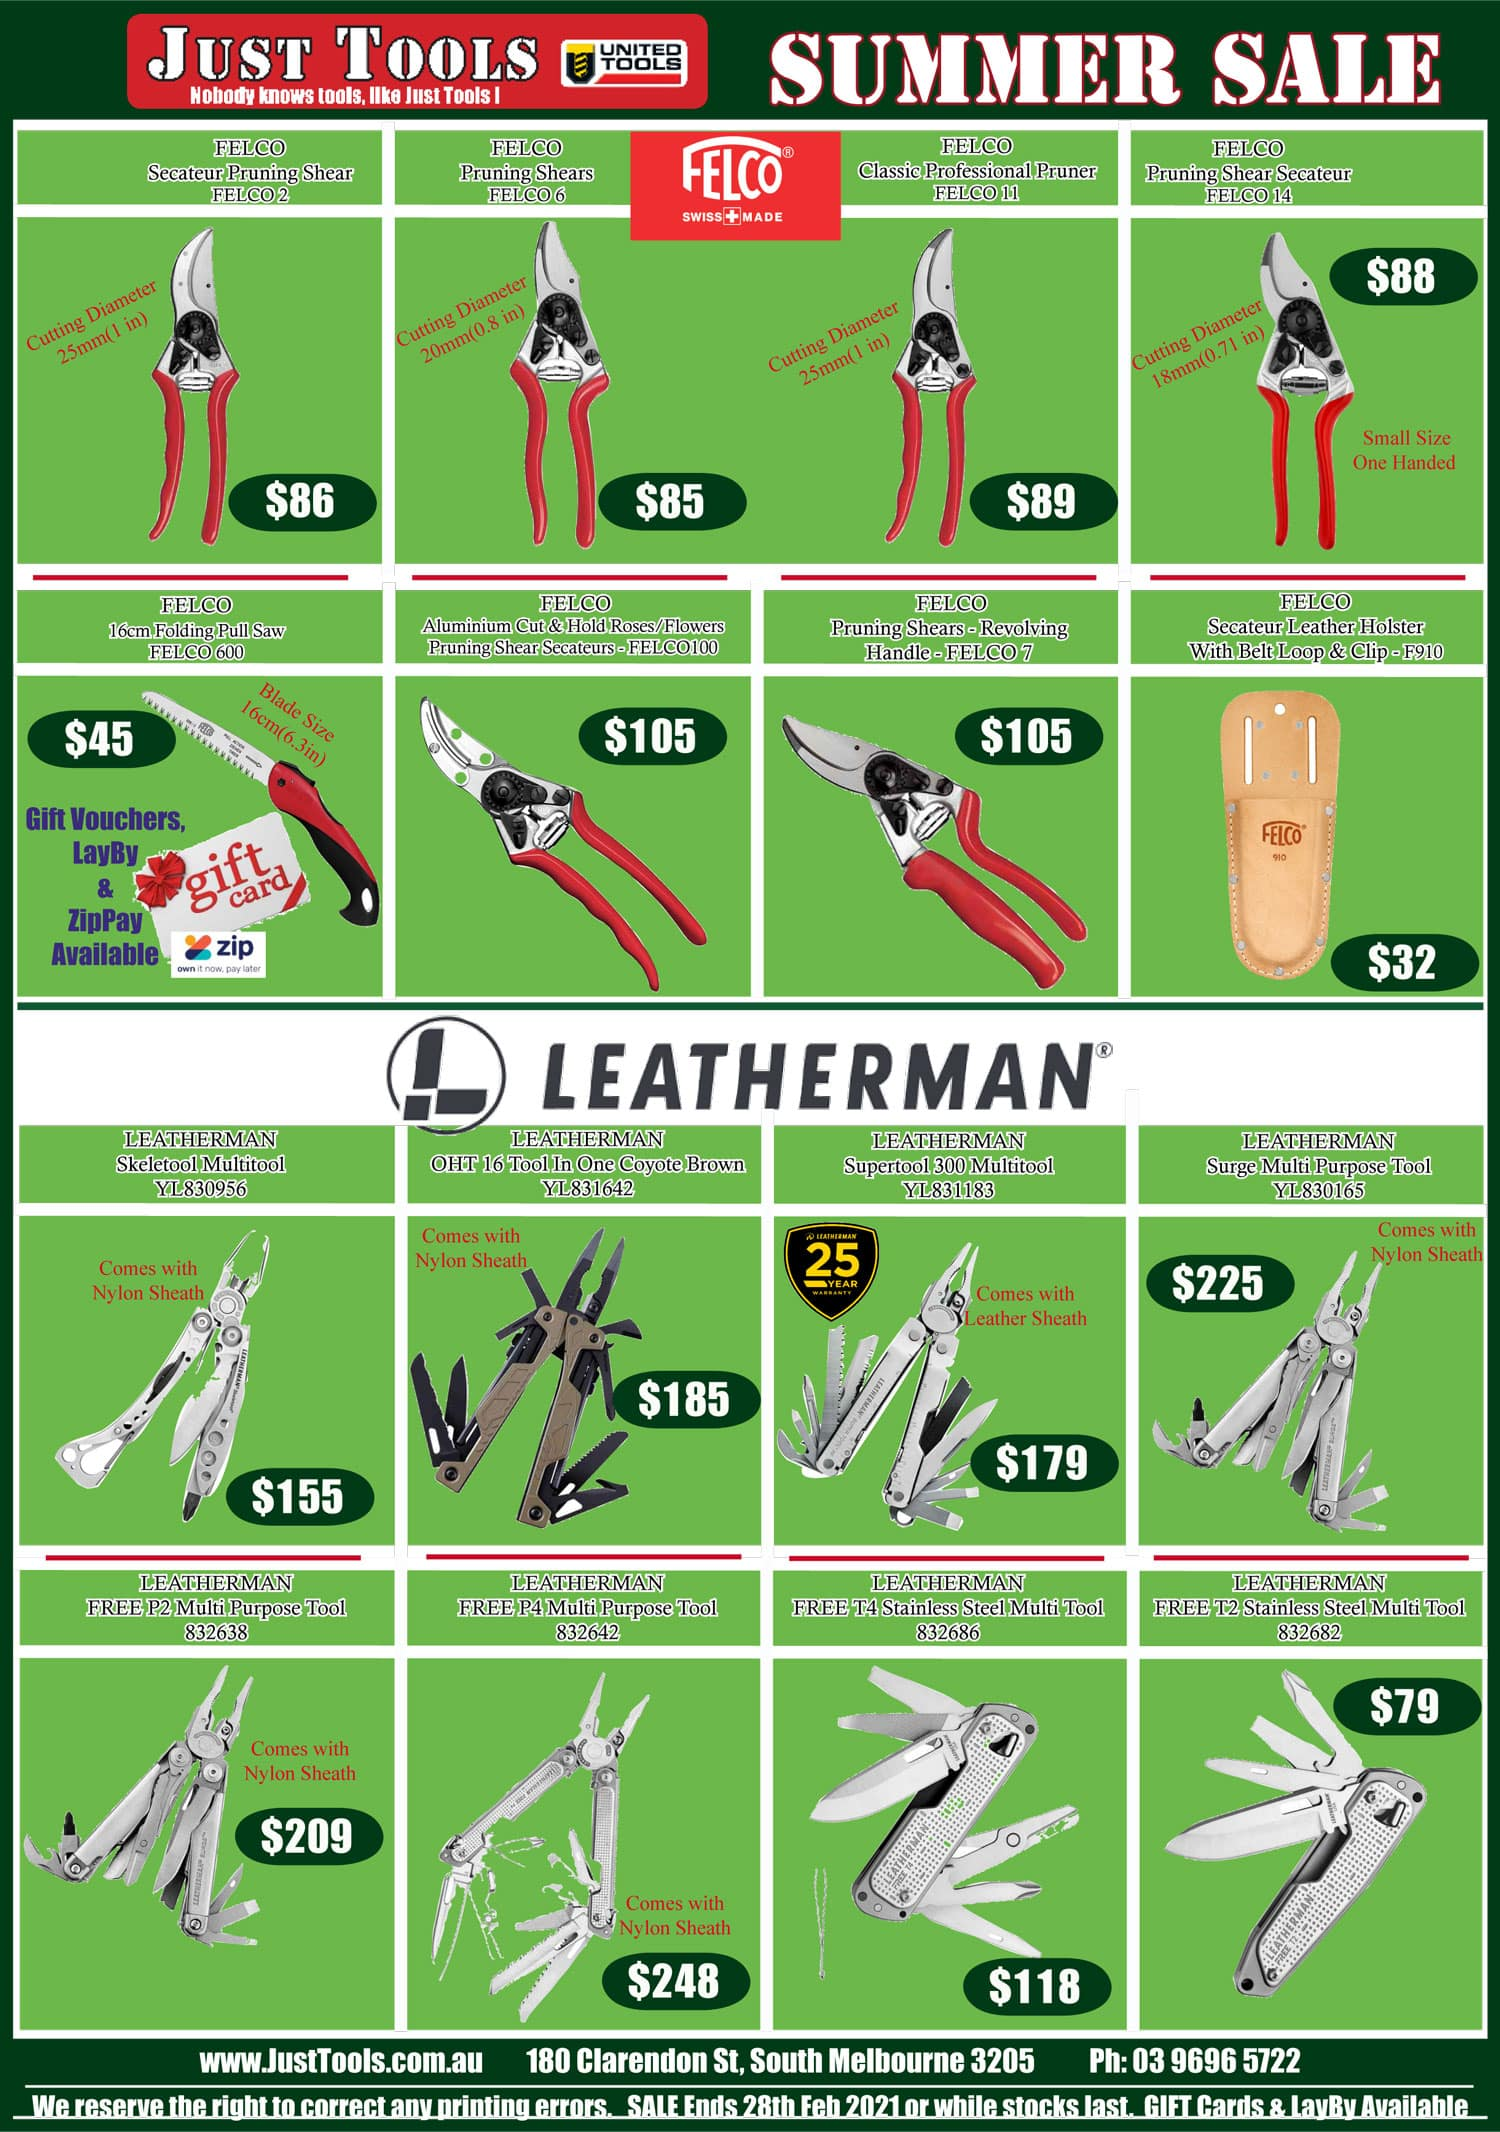 just-tools-summer-sale-page-2a-min.jpg